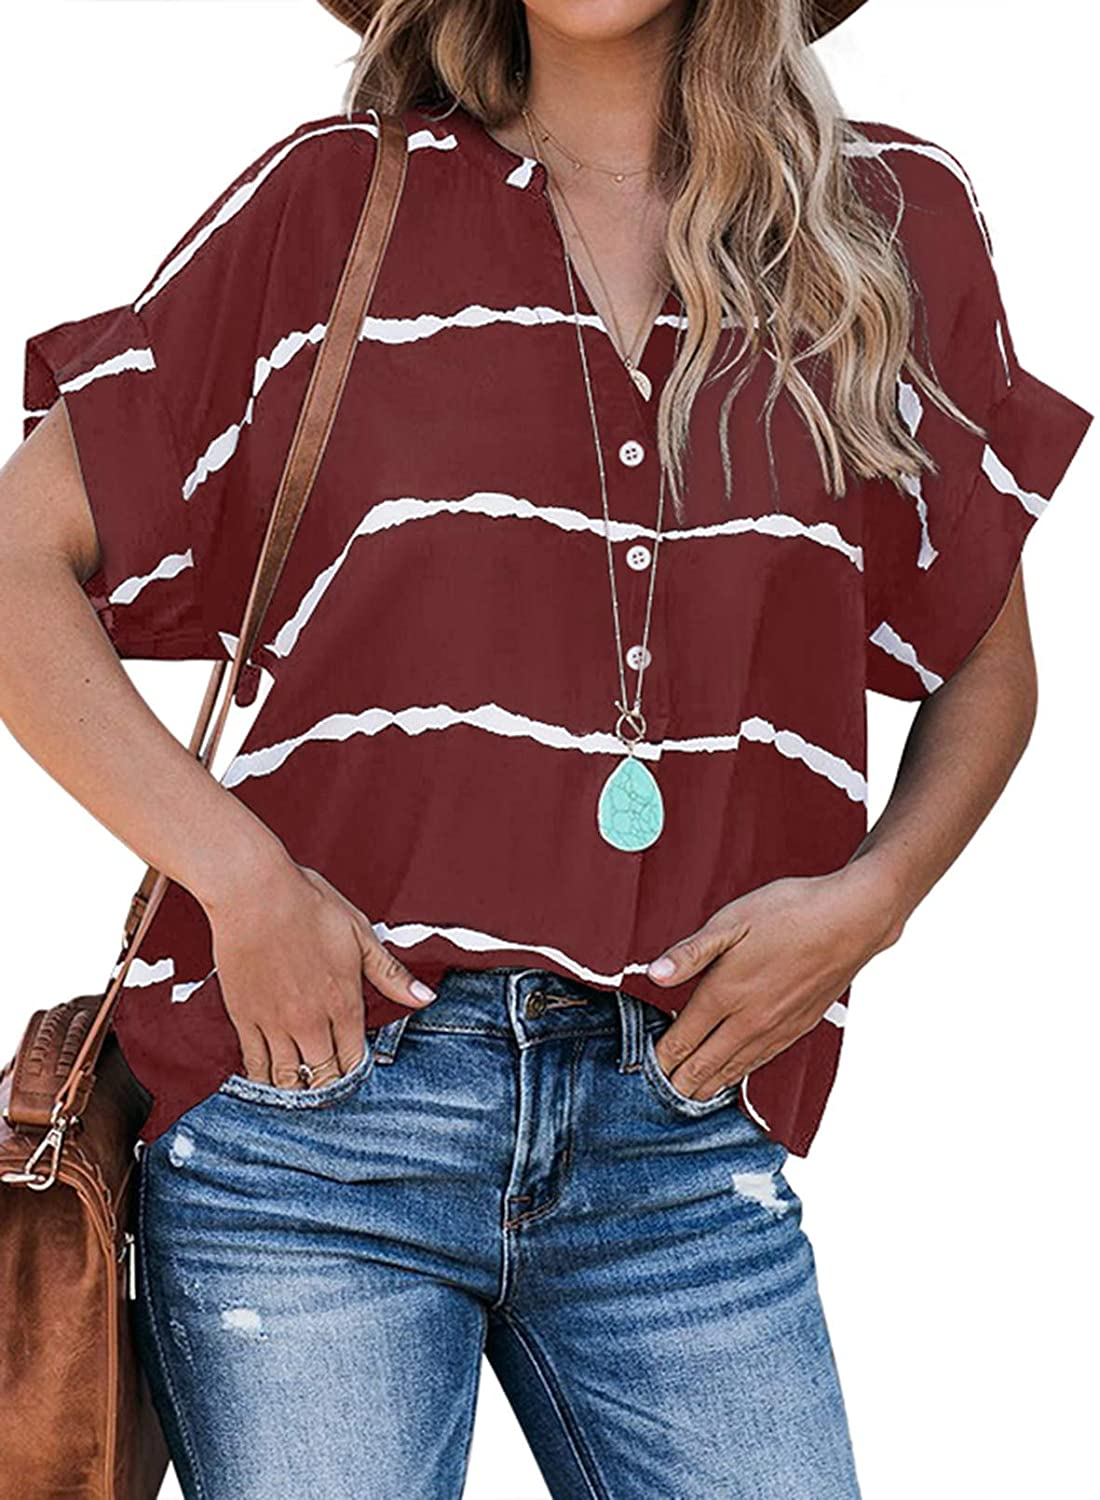 Dokotoo Womens Summer Short Sleeve Shirts V Neck Tops and Blouses for Work